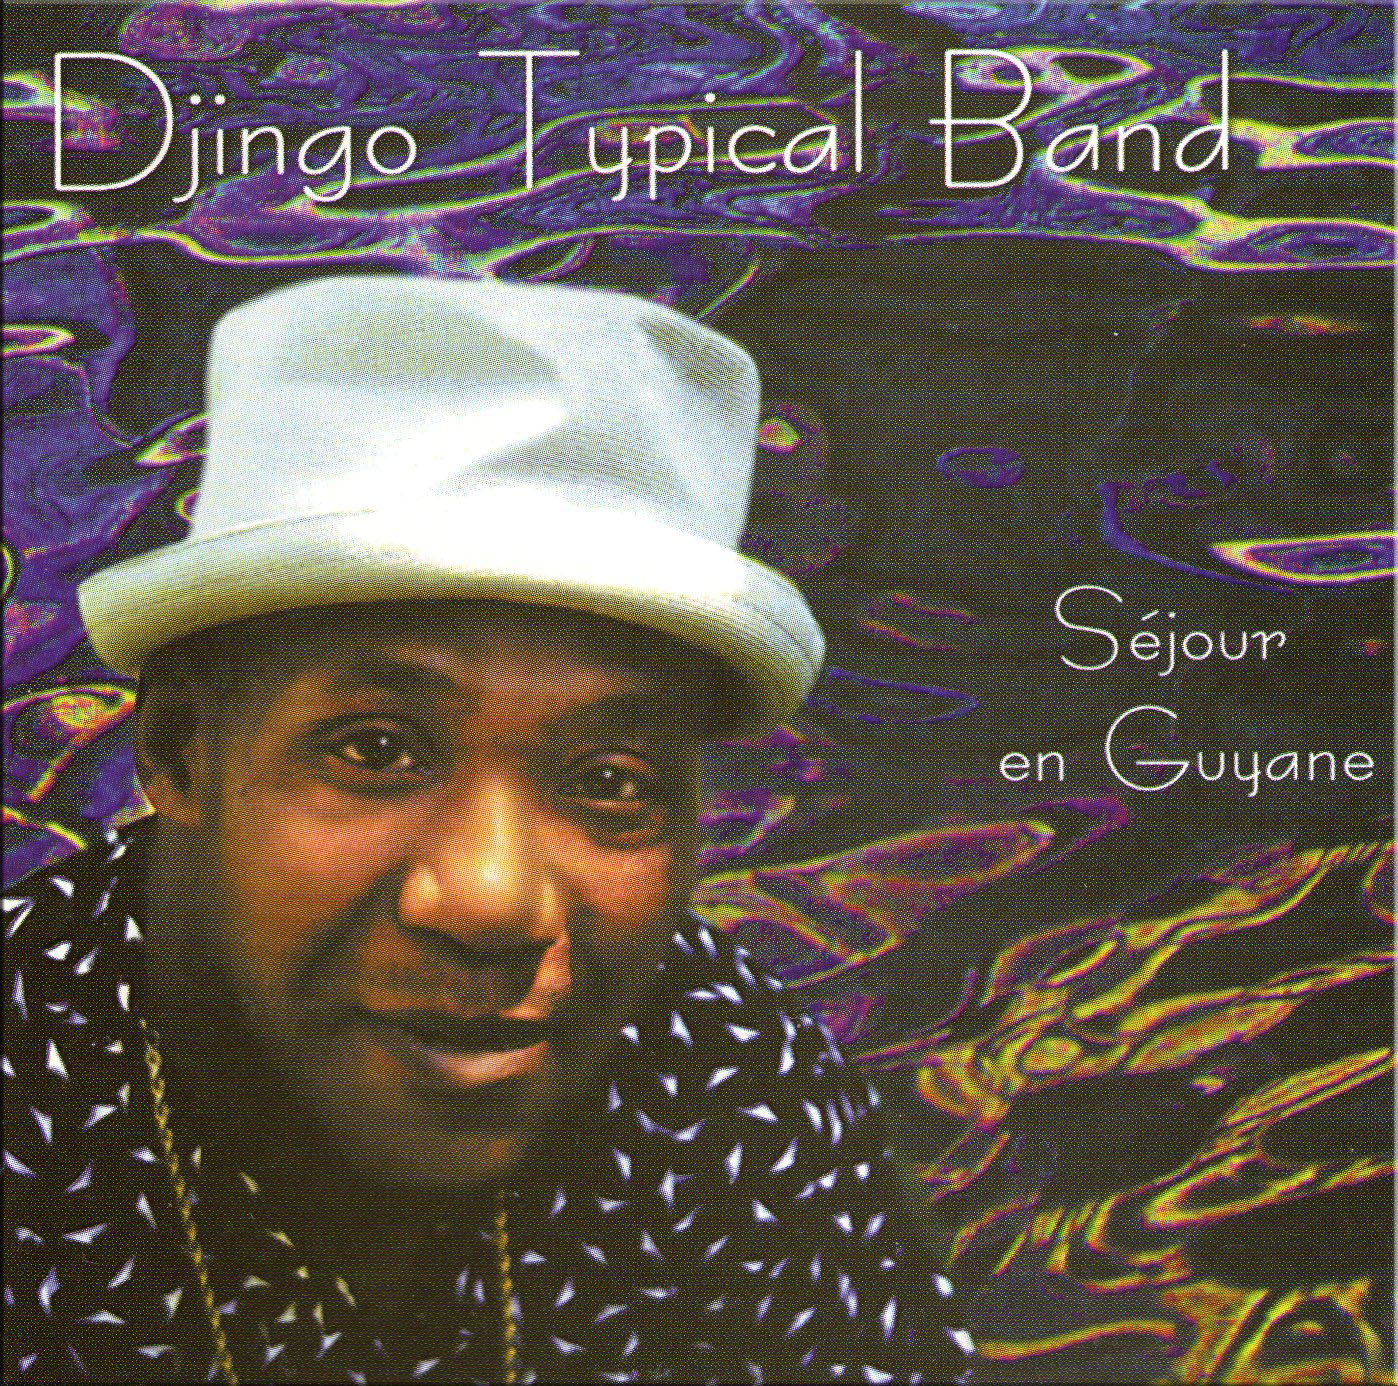 Djingo typical band